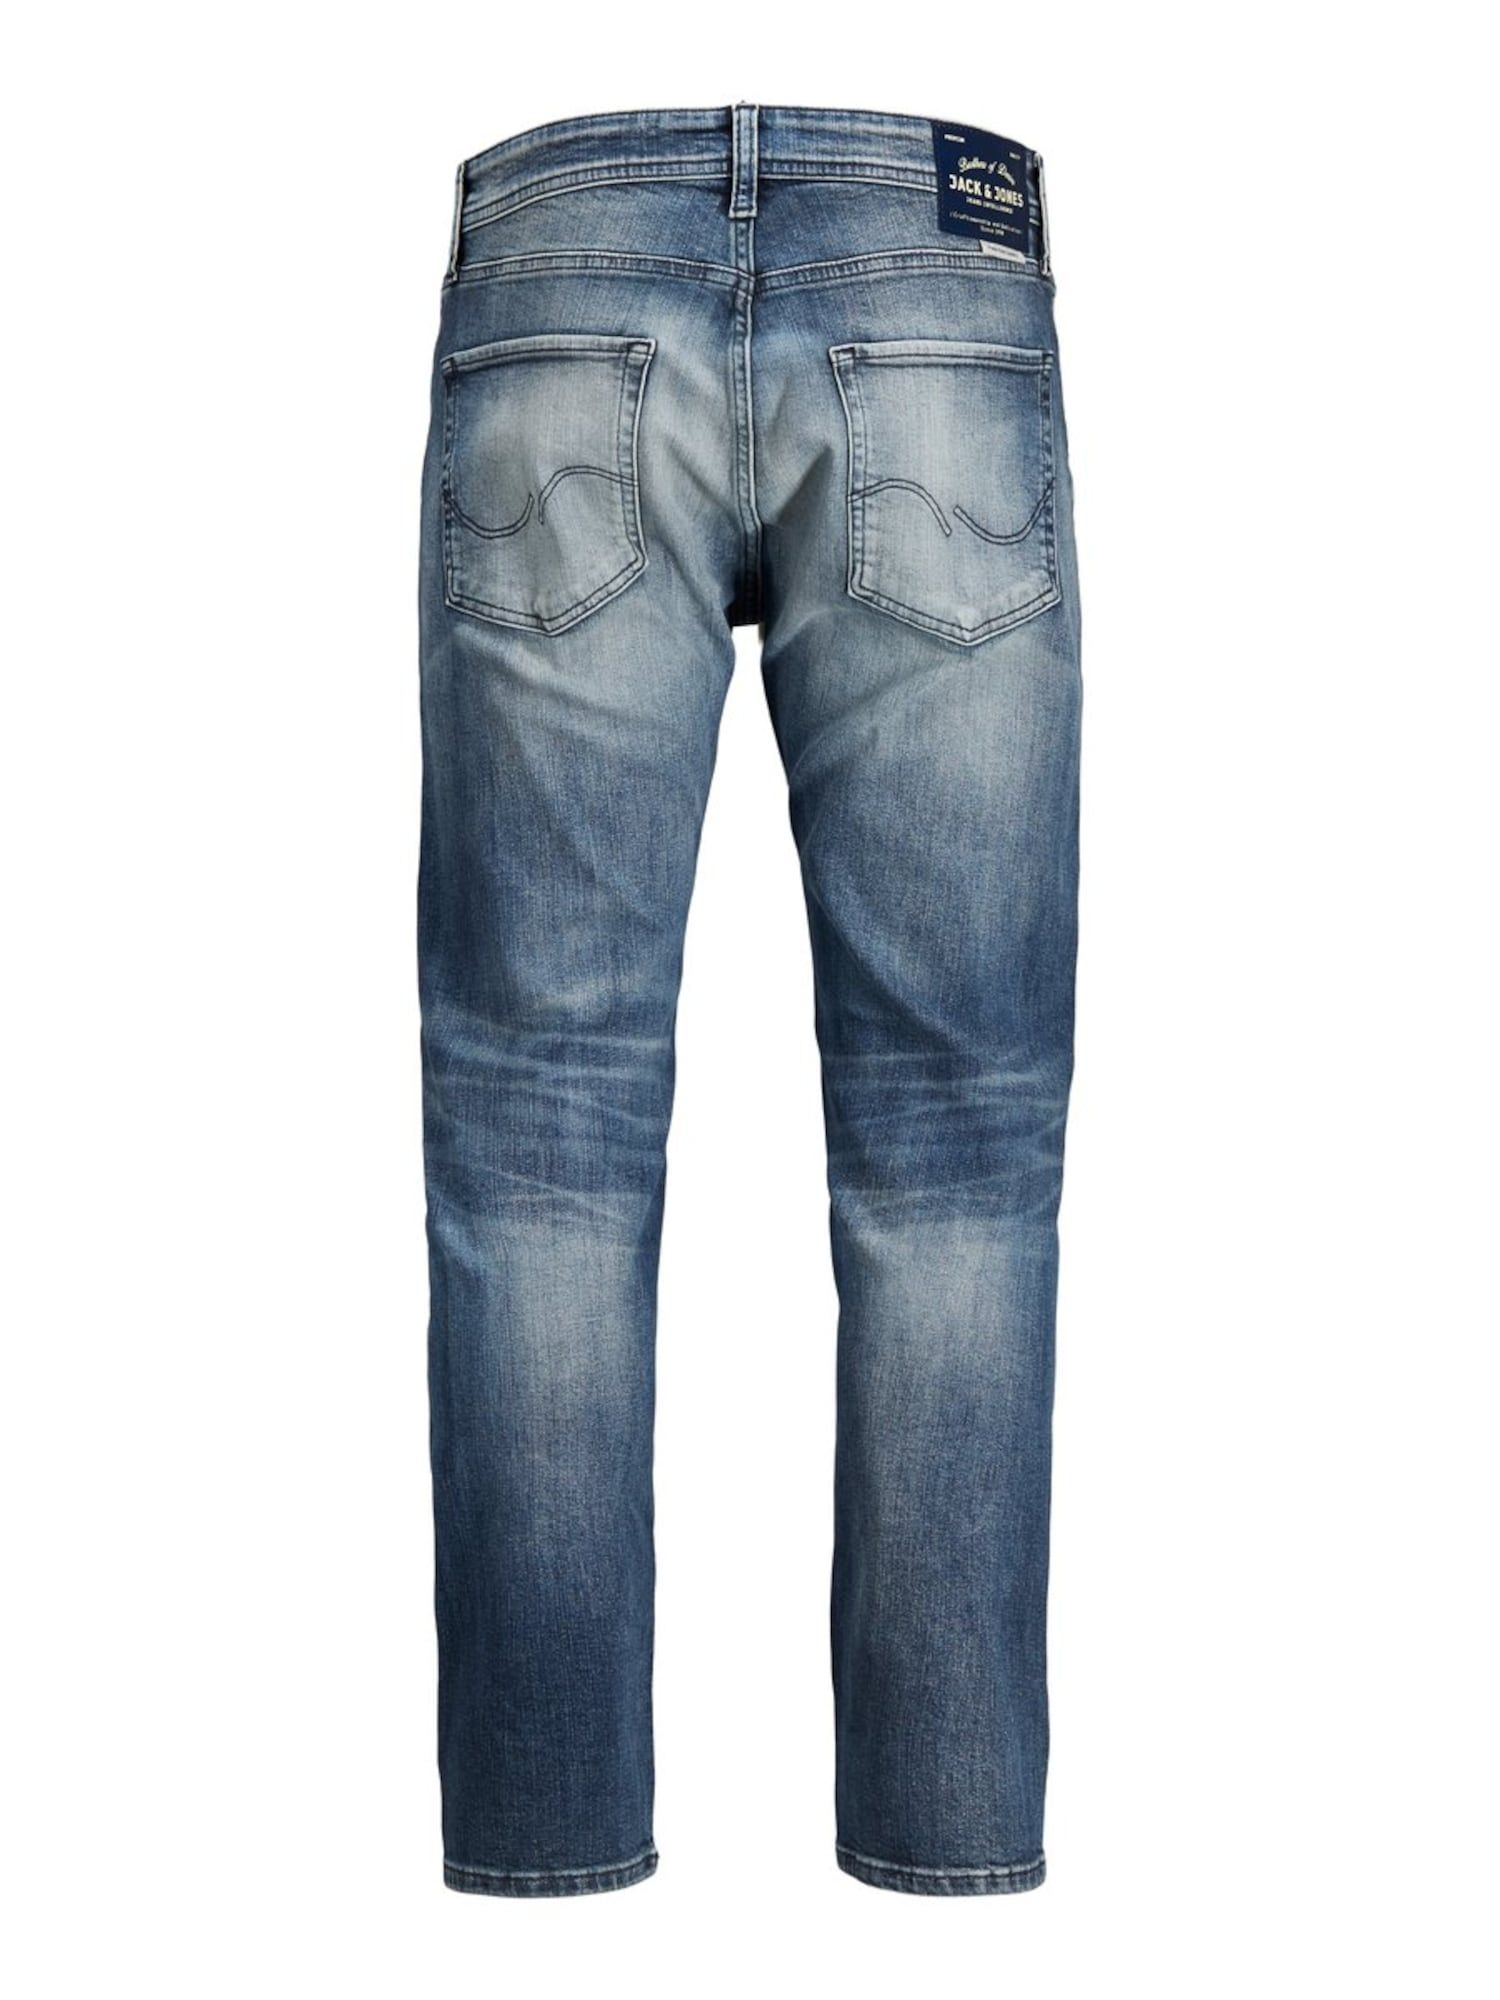 JACK & JONES Jeans in blue denim